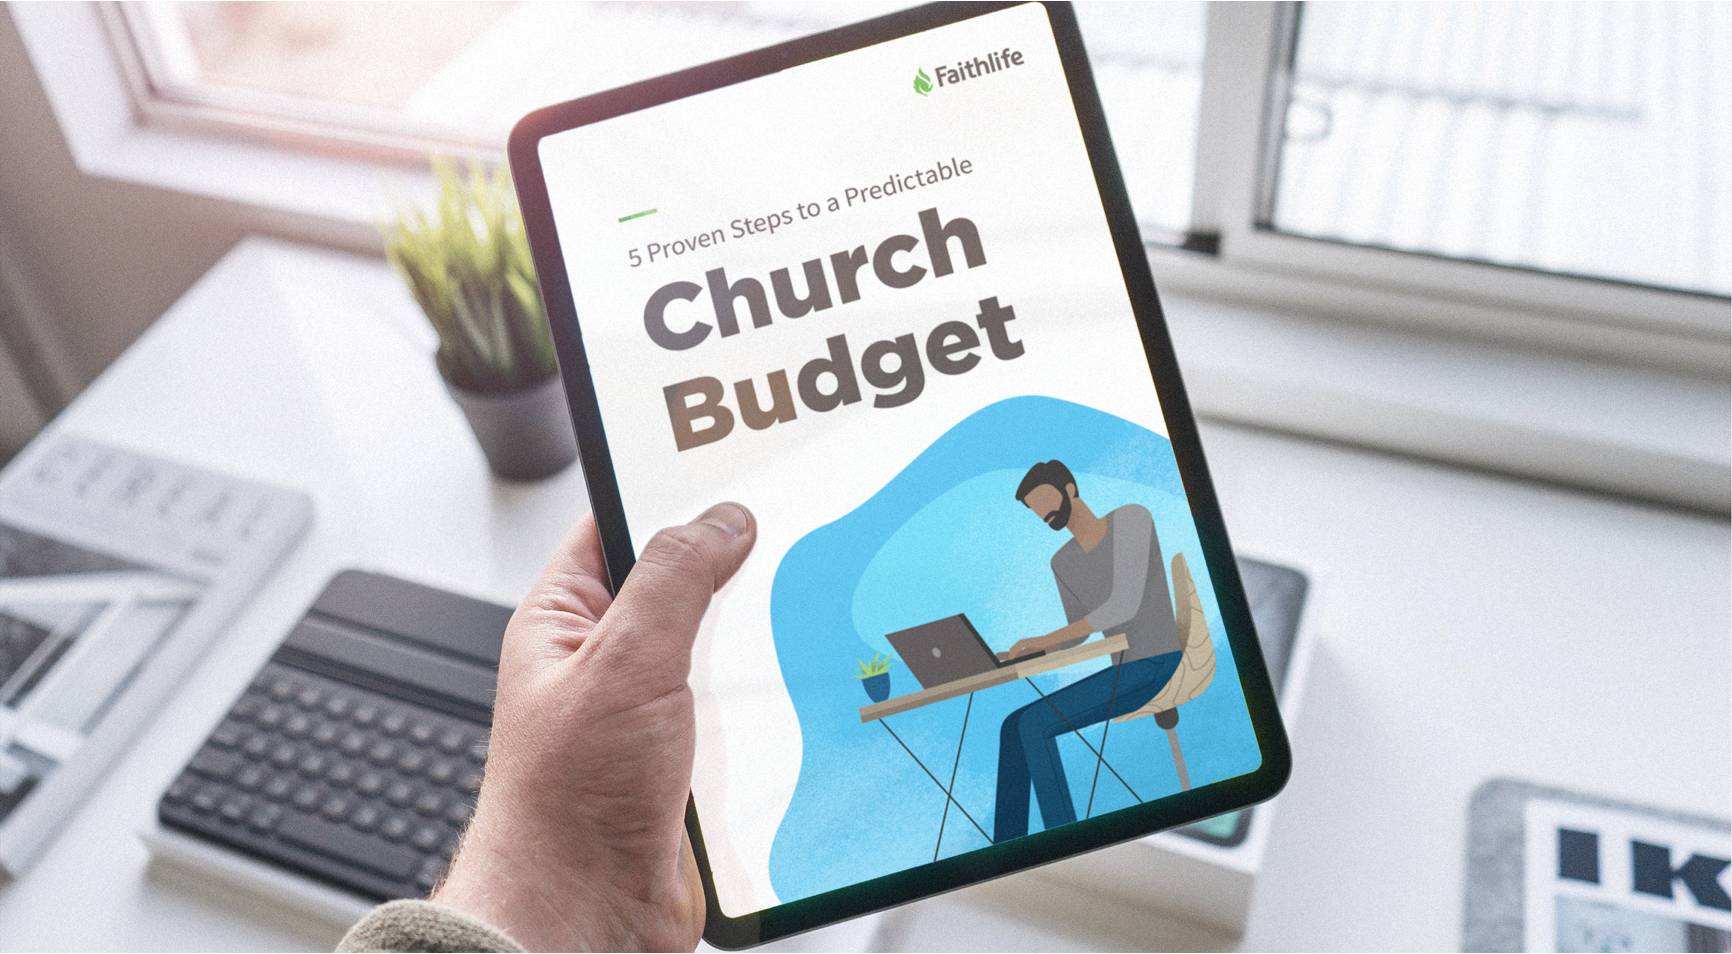 5 Proven Steps to a Predictable Church Budget Ebook